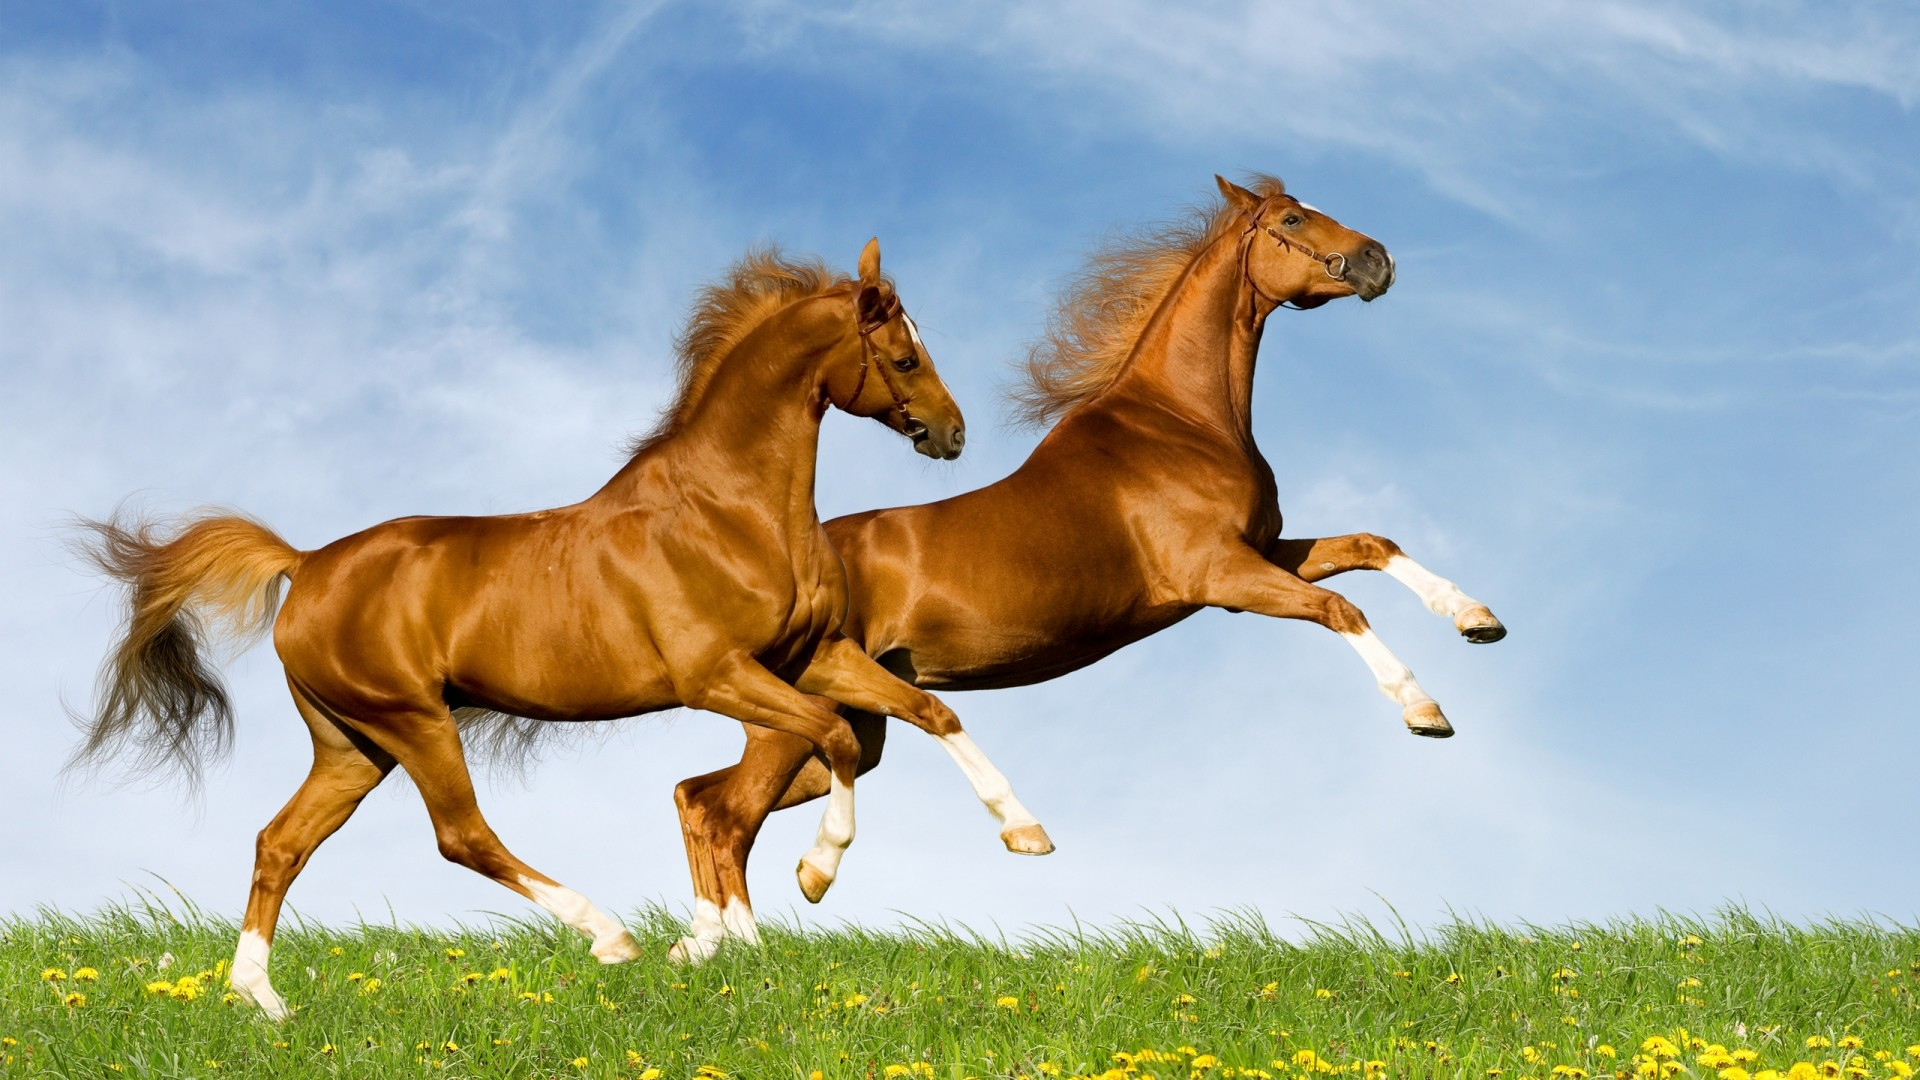 1920x1080 Backgrounds for Gt Wild Horses Running Wallpaper px